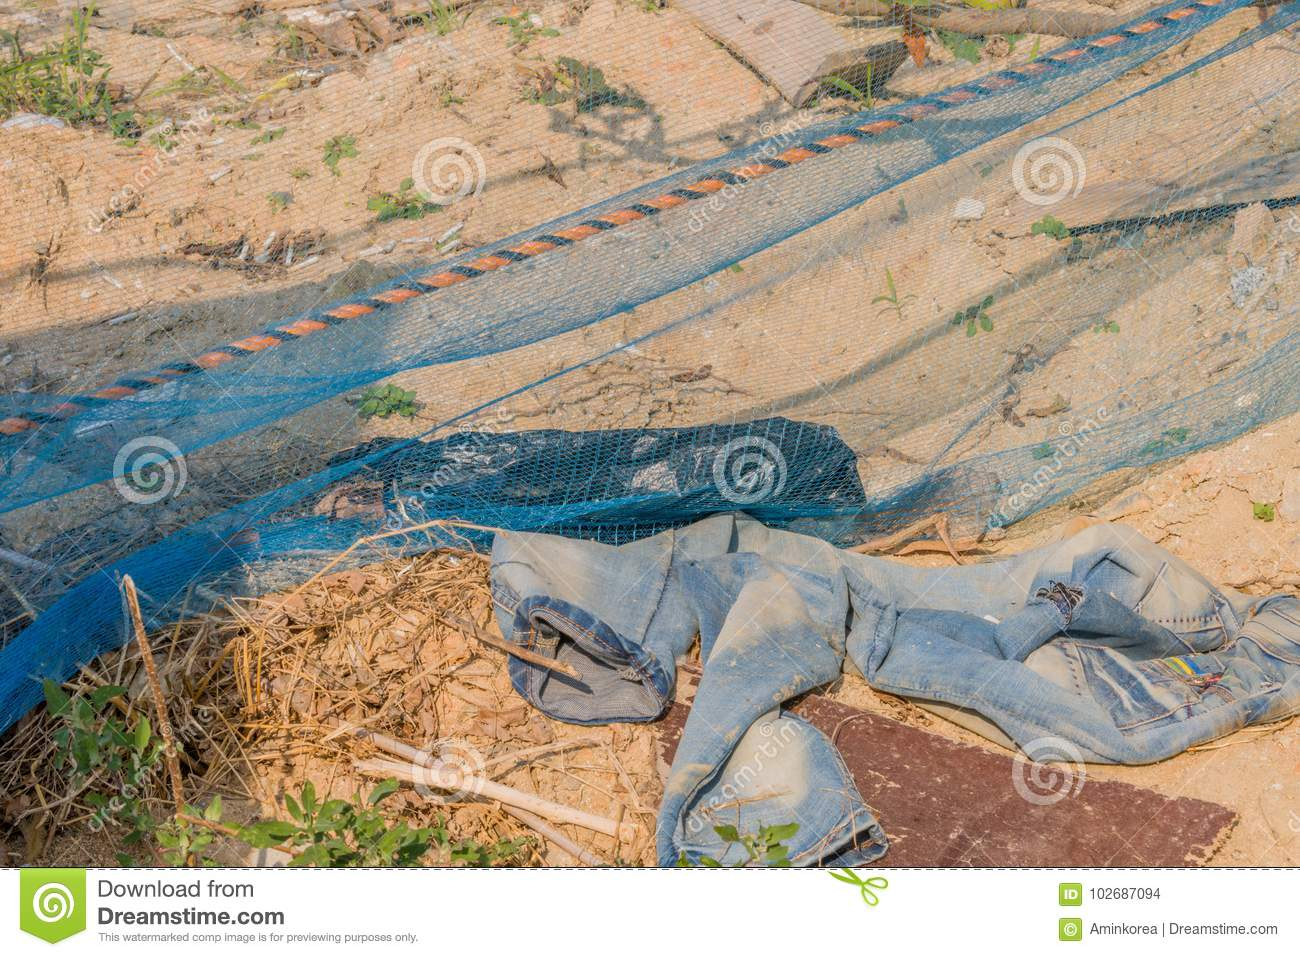 Pair of faded bluejeans laying in dirt